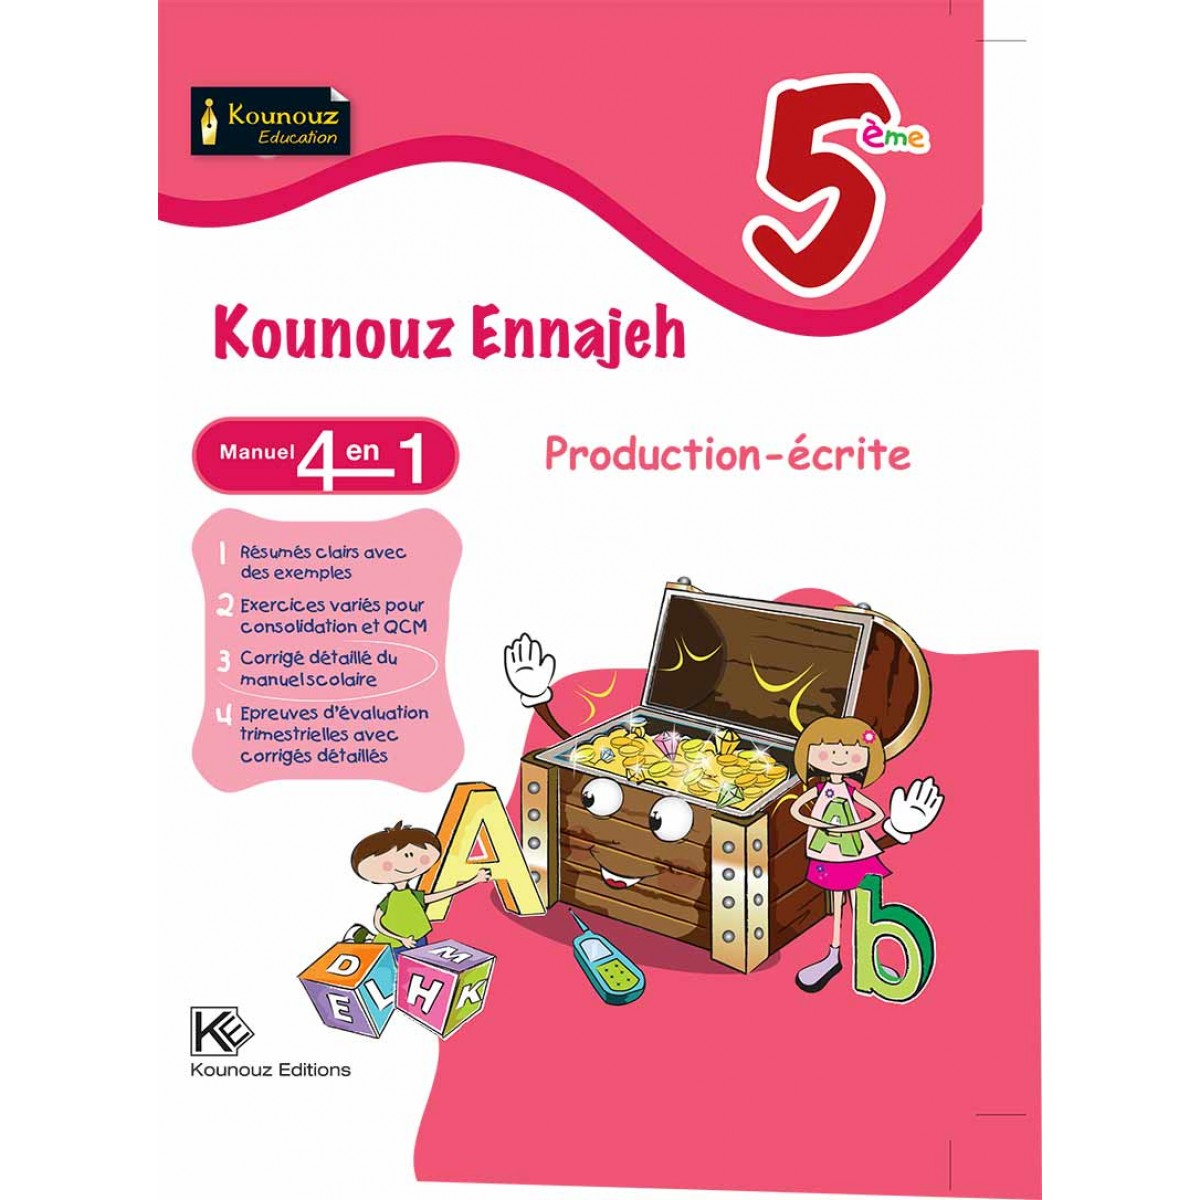 Production Ecrite 5eme Annee De Base Kounouz Education